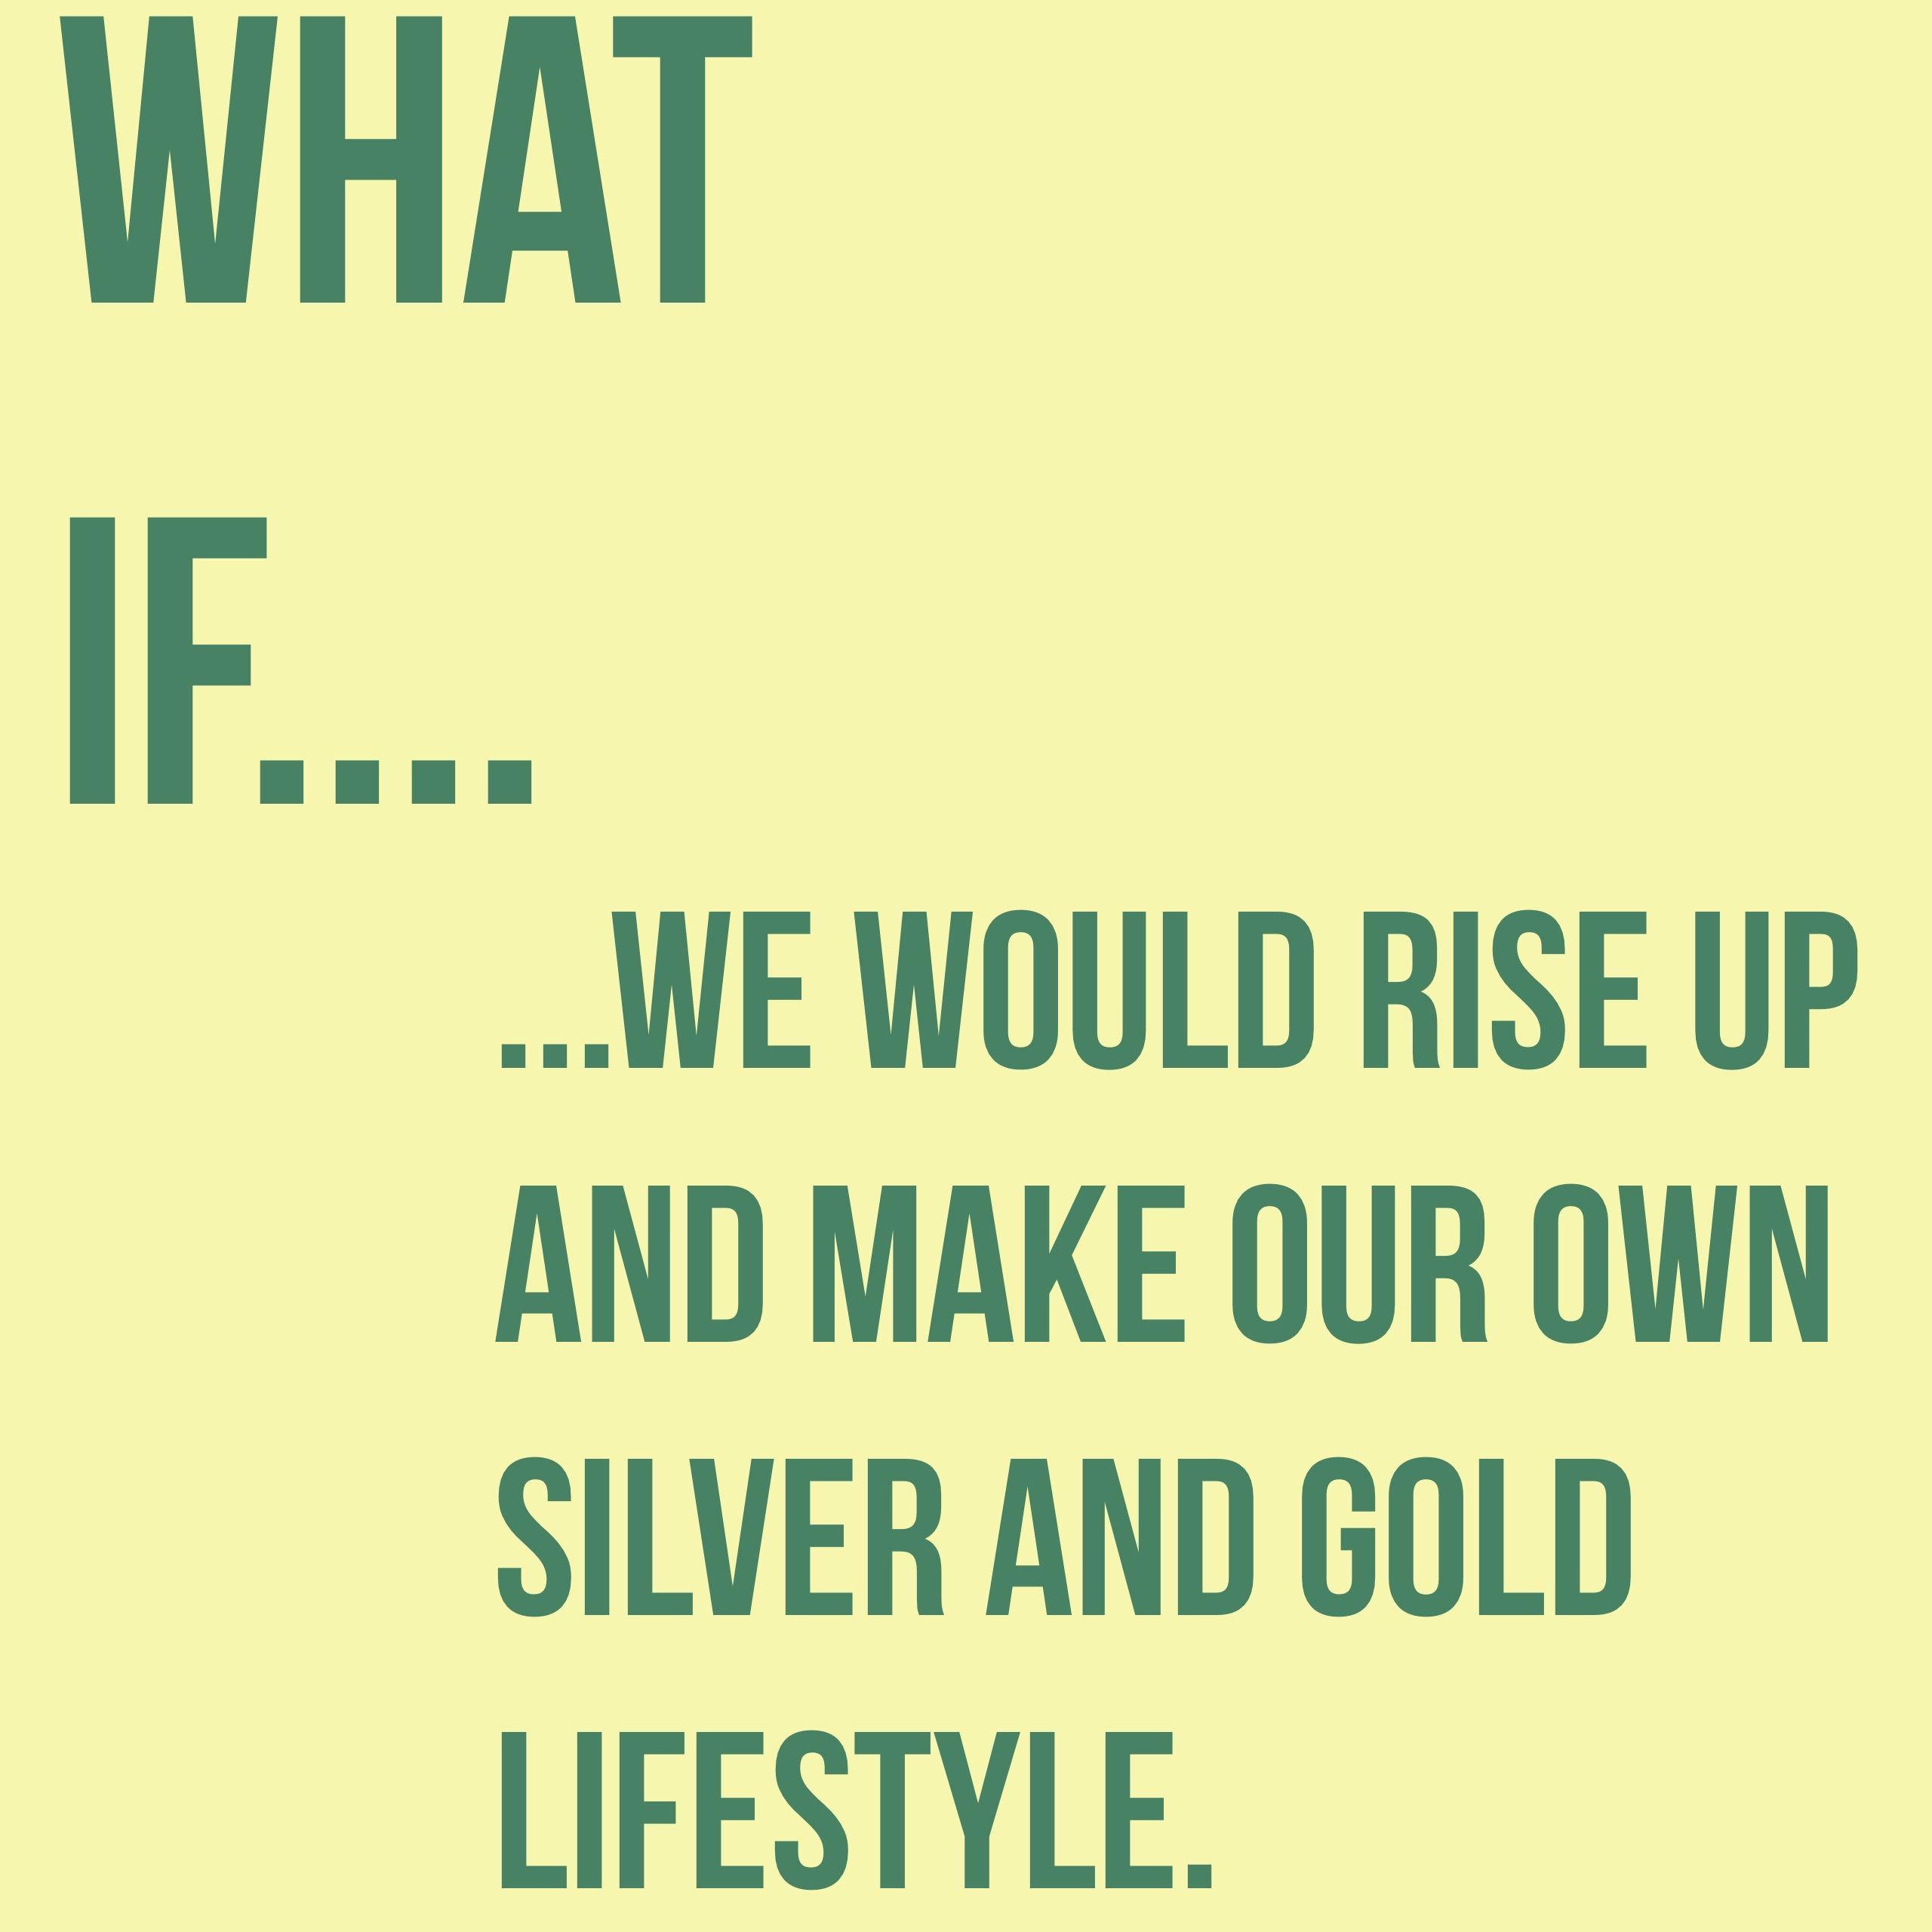 Act 3:6  Then Peter said, Silver and gold have I none; but such as I have give I thee: In the name of YAHWEH Christ of Nazareth rise up and walk. ~~~ #RiseUp #ThisChangesEverything #ItWasAlwaysAboutTheResurrection #SelfRealization #WeGotNext #Stimulation #3rdEyeOpen #HopeDealer #Dubai #Italy #Miami #DFW #Atlanta #Malibu #Chief #King #Yahweh #Silver #Gold #YahwehMagazine